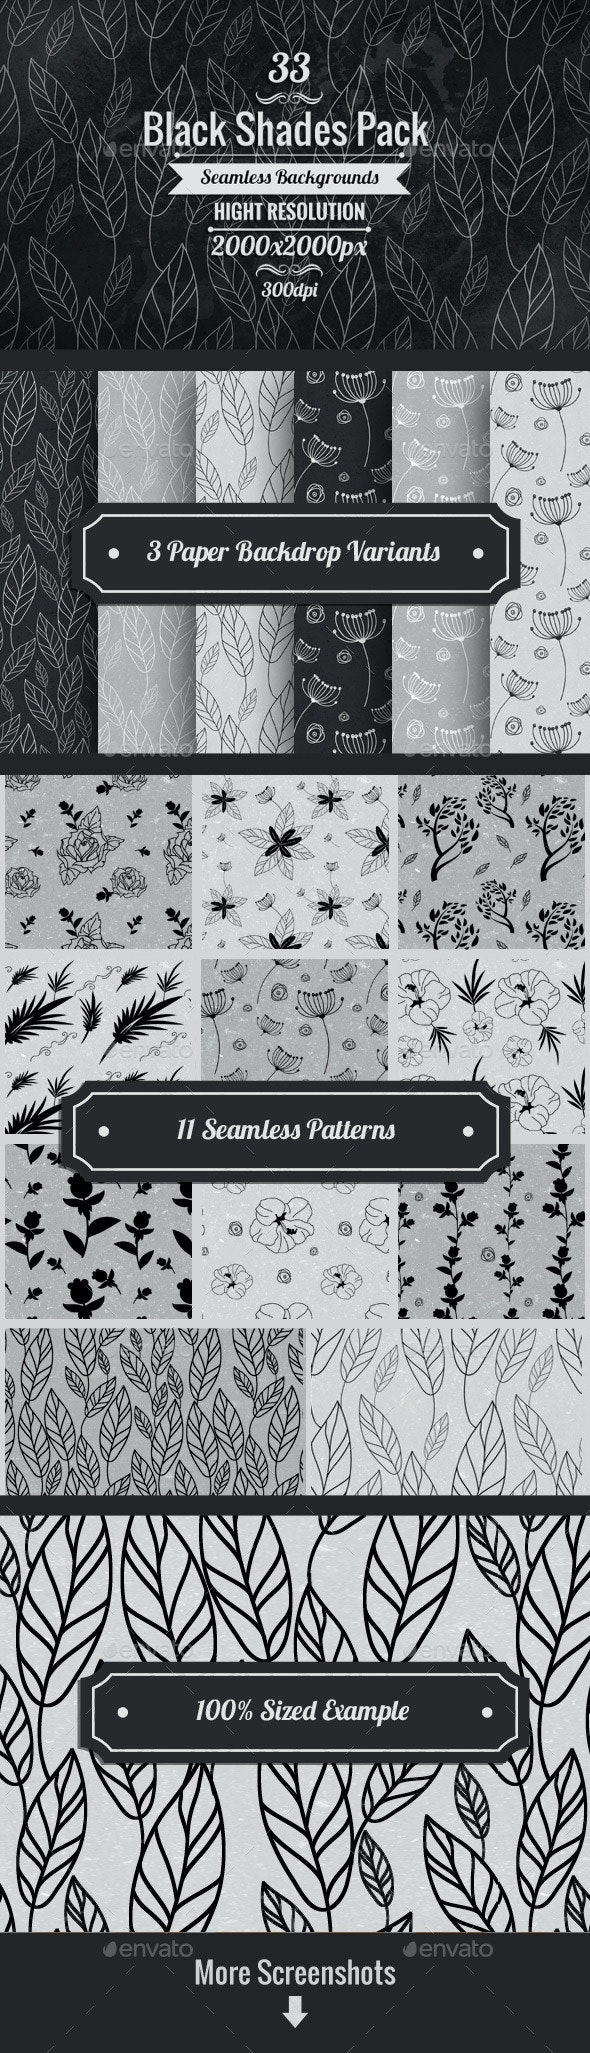 Black And White Floral Paper Backgrounds - Patterns Backgrounds